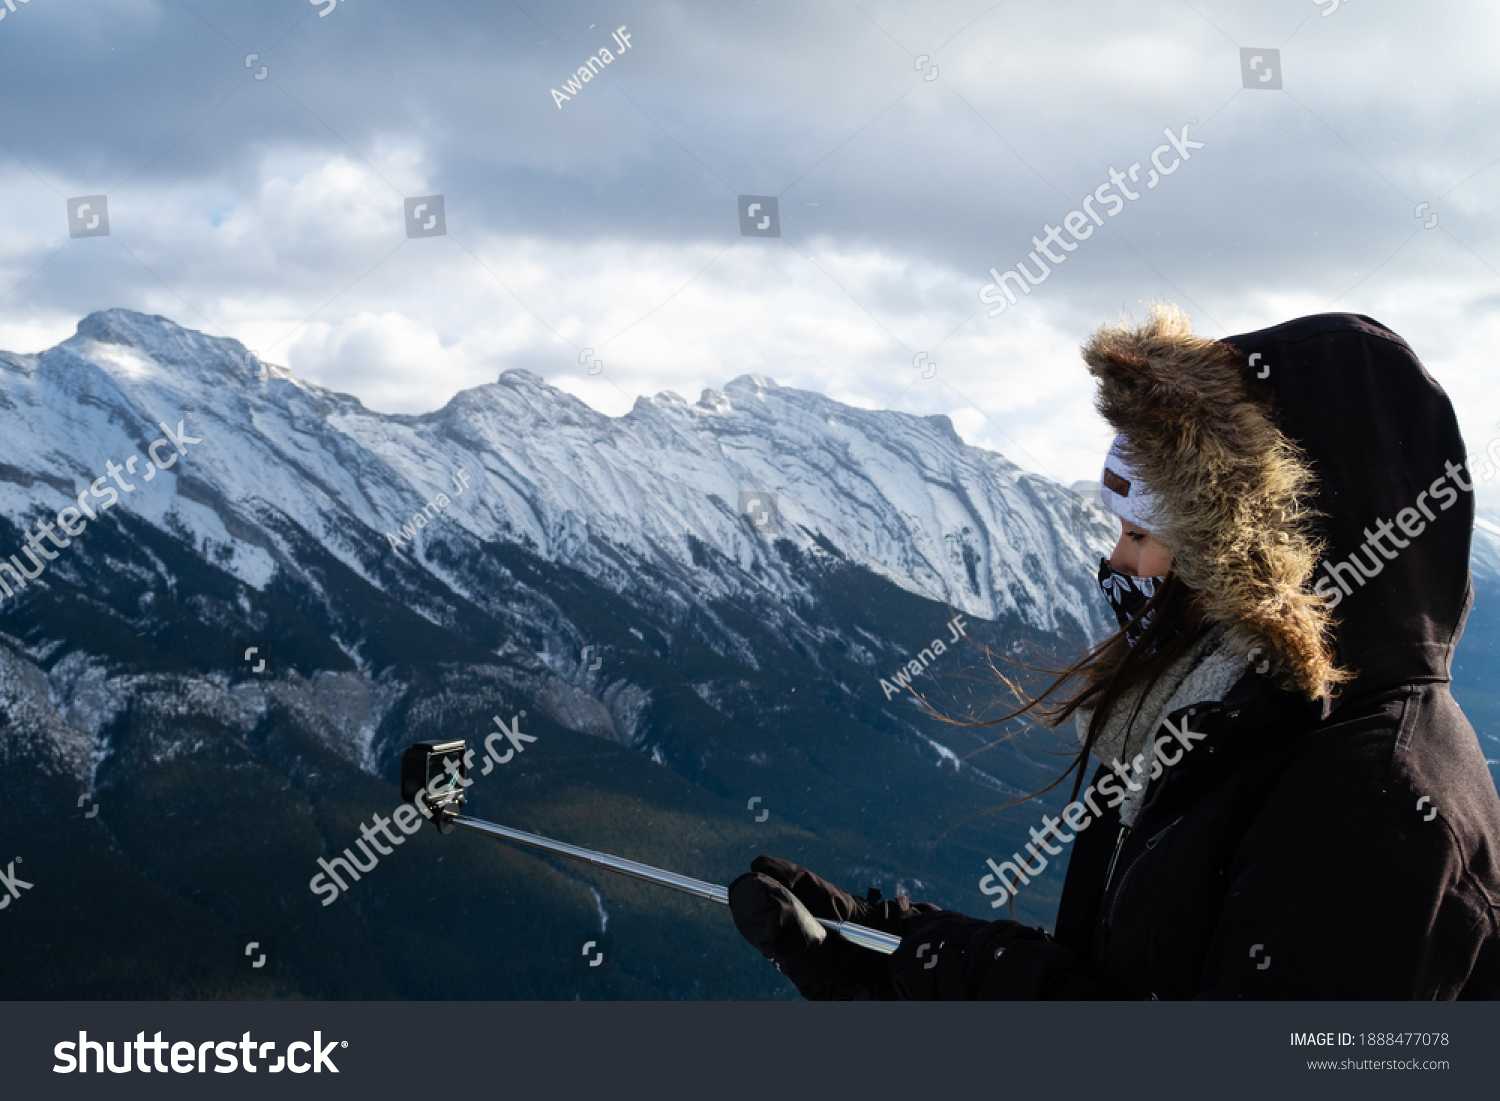 stock-photo-banff-canada-december-woman-